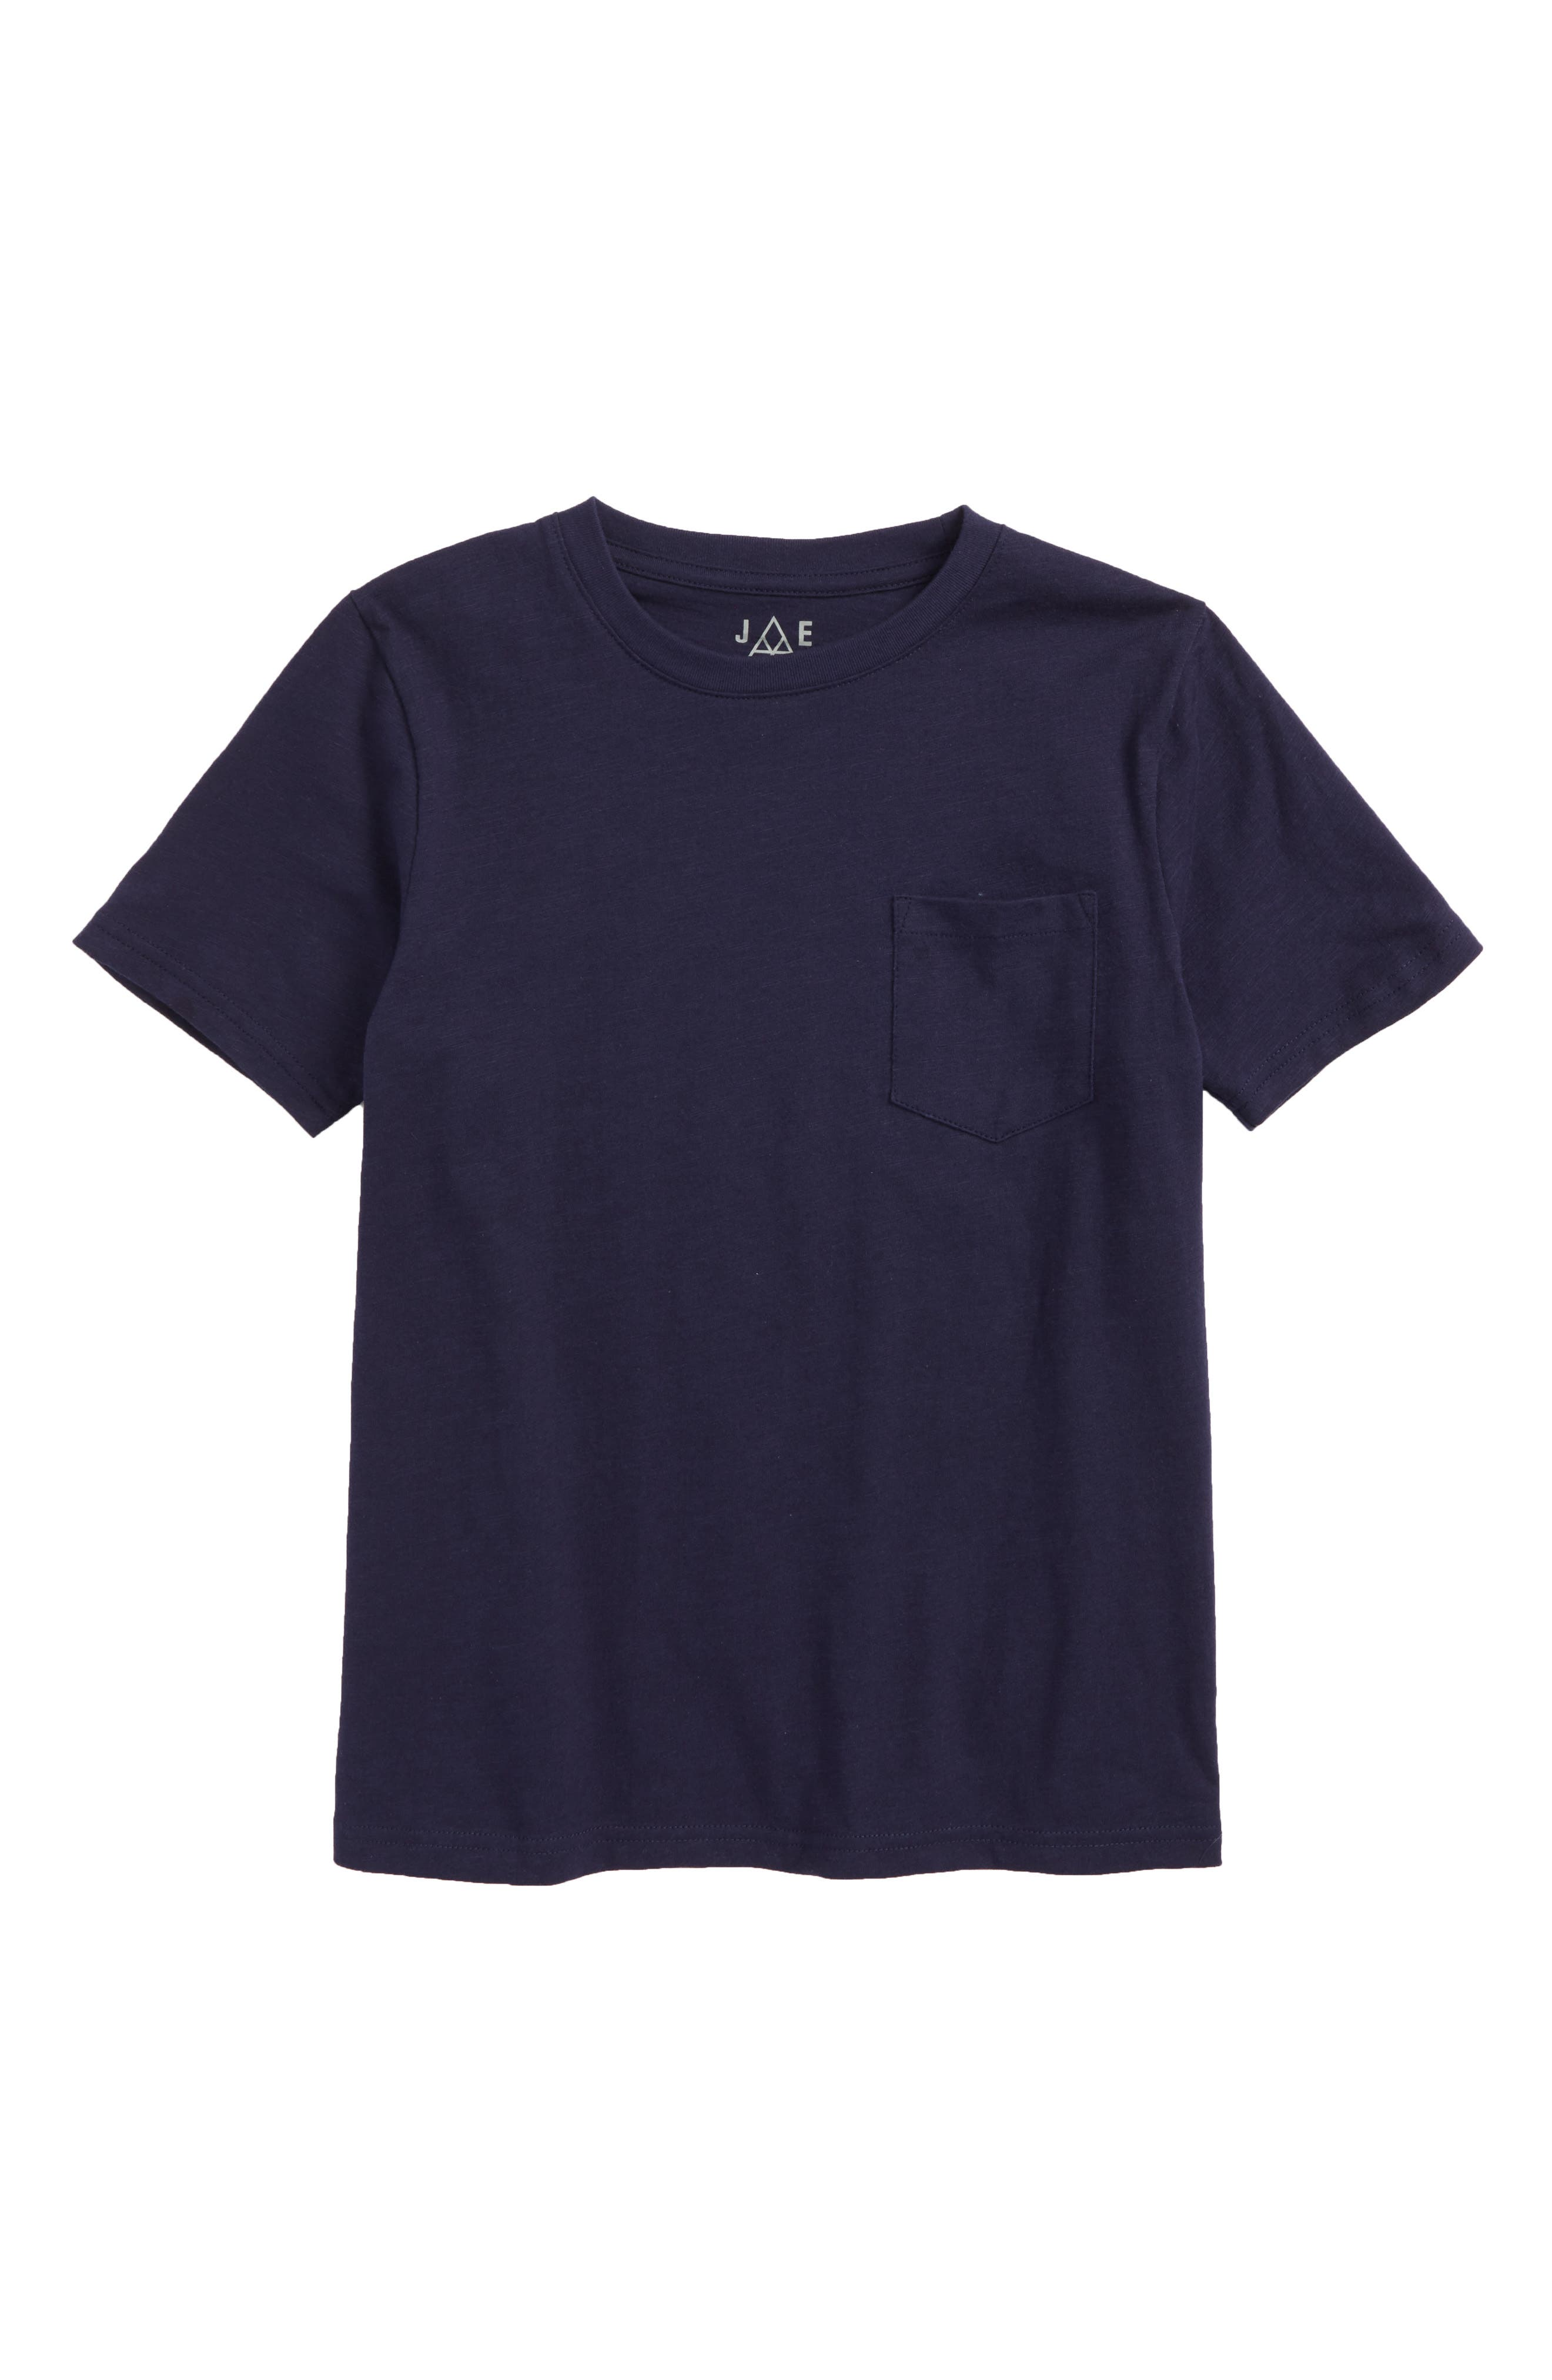 Pocket T-Shirt,                         Main,                         color, Navy